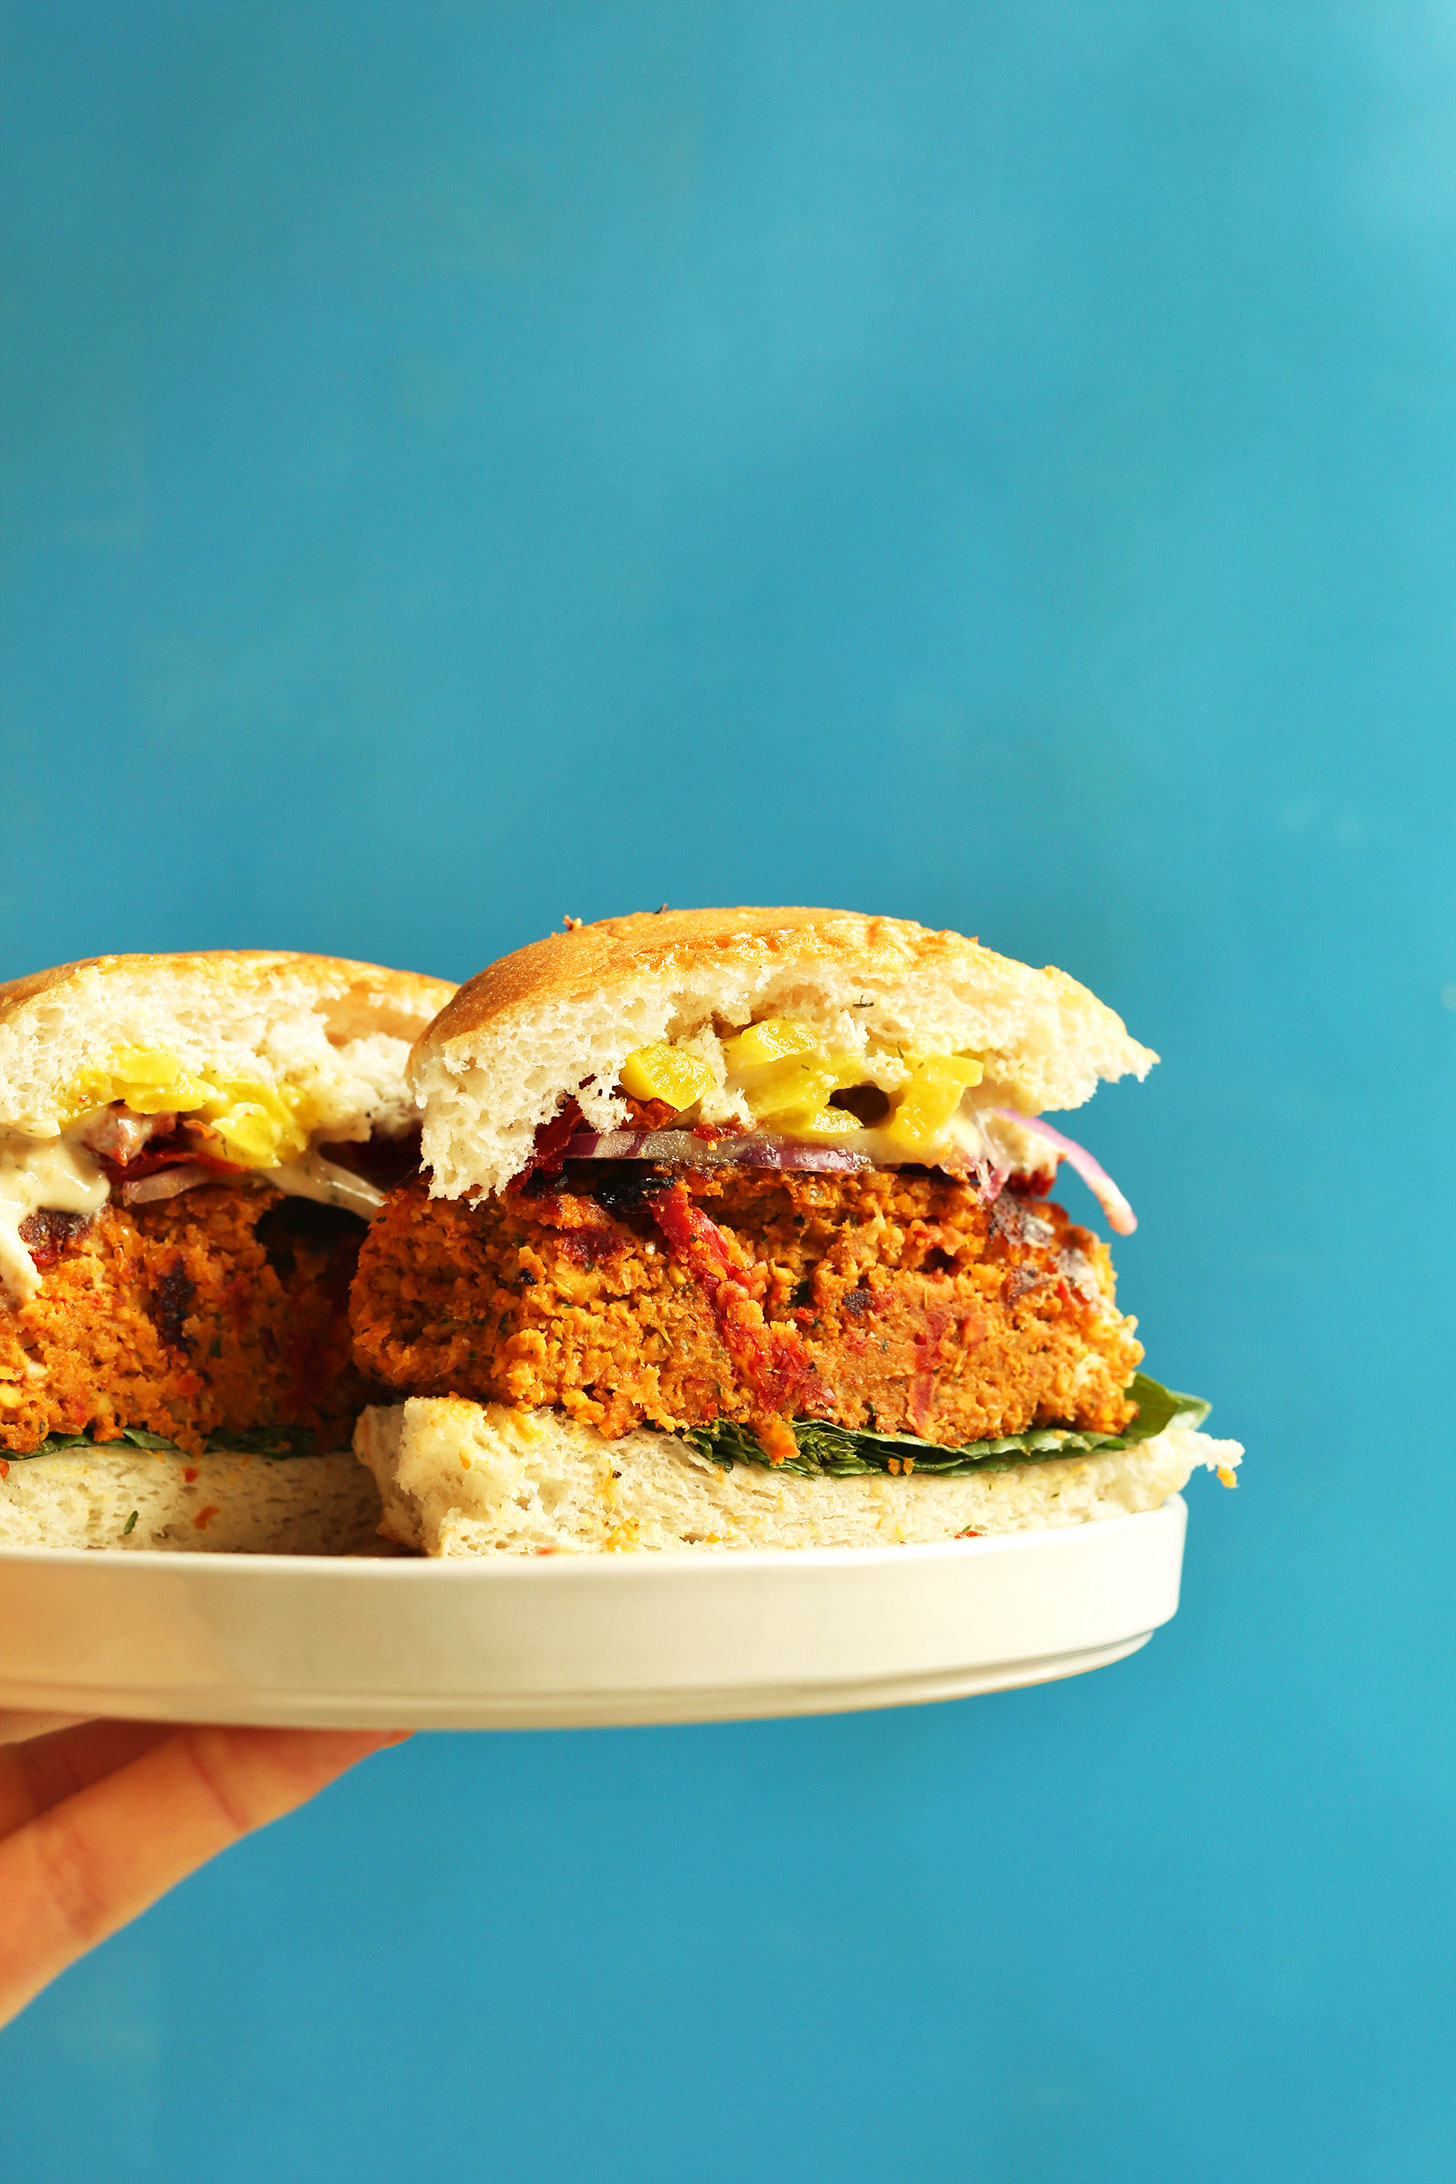 Halved Sun-dried Tomato Herbed Chickpea Burger for a delicious plant-based dinner